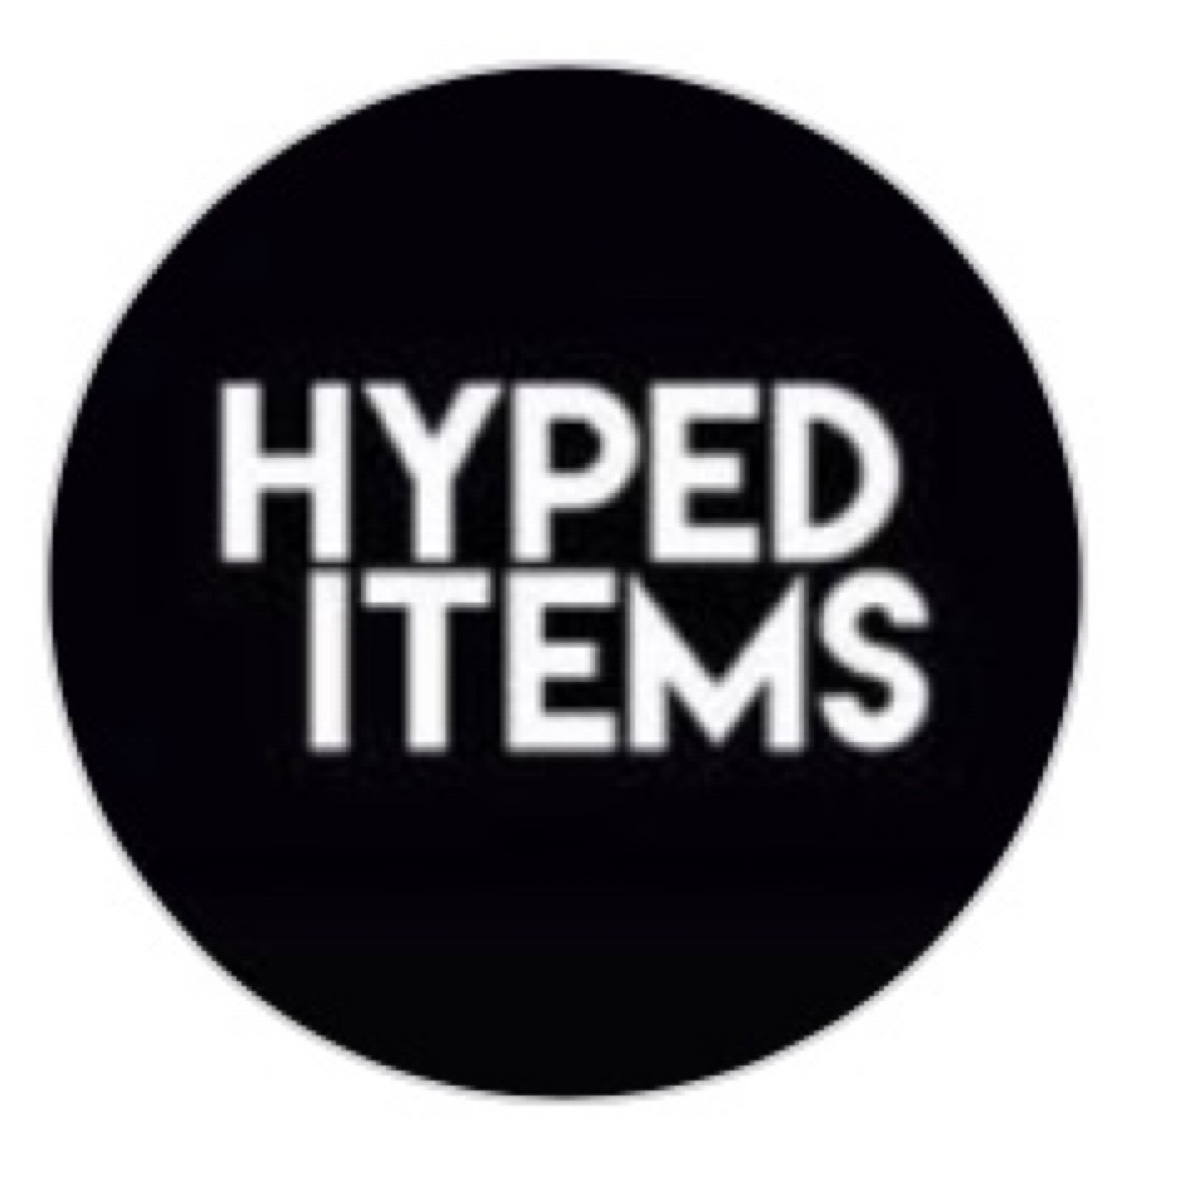 Bump profile picture for @hyped1tems